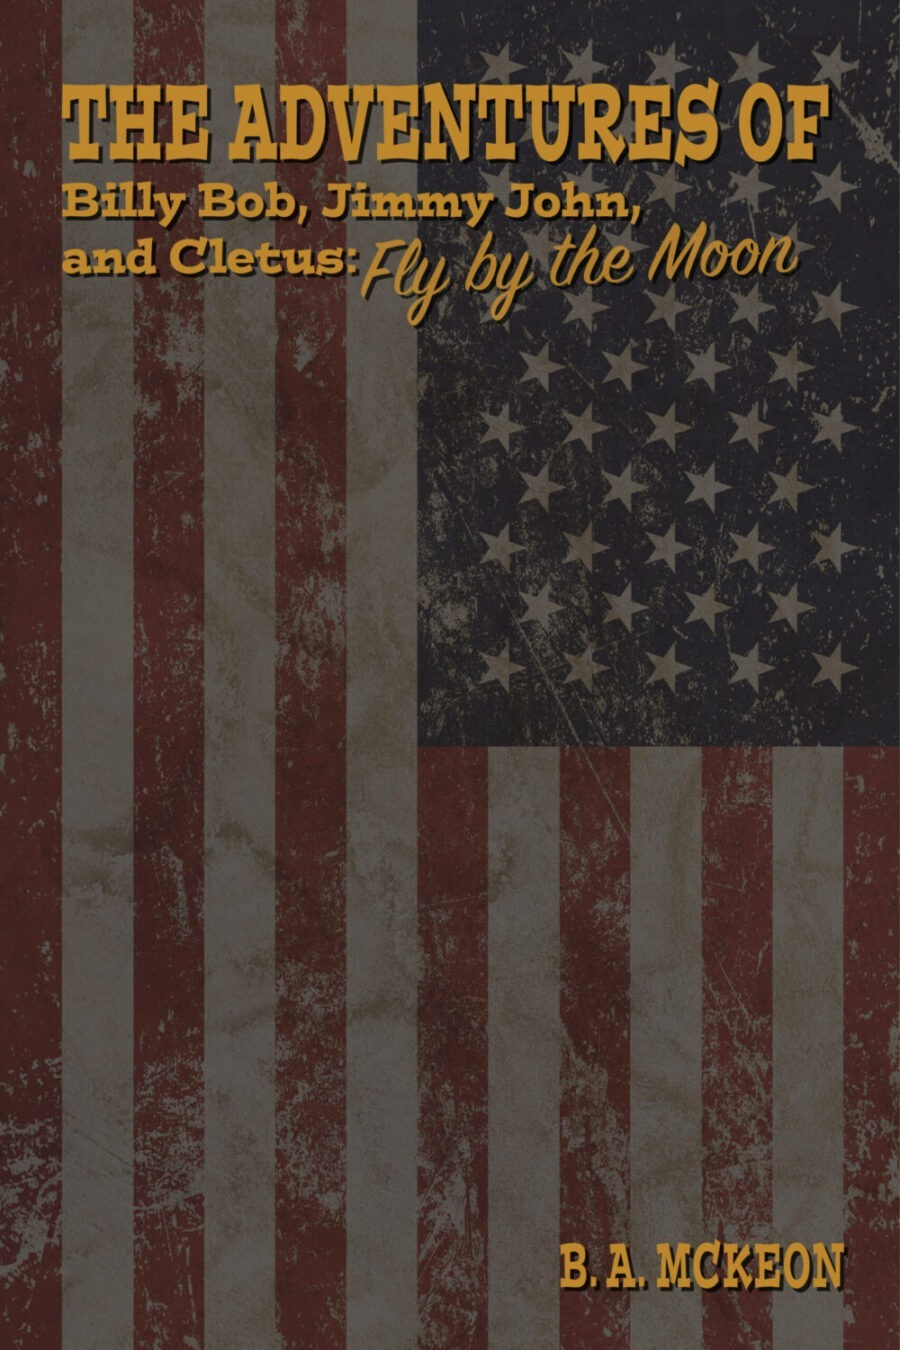 The Adventures of Billy Bob, Jimmy John, and Cletus: Fly by the Moon